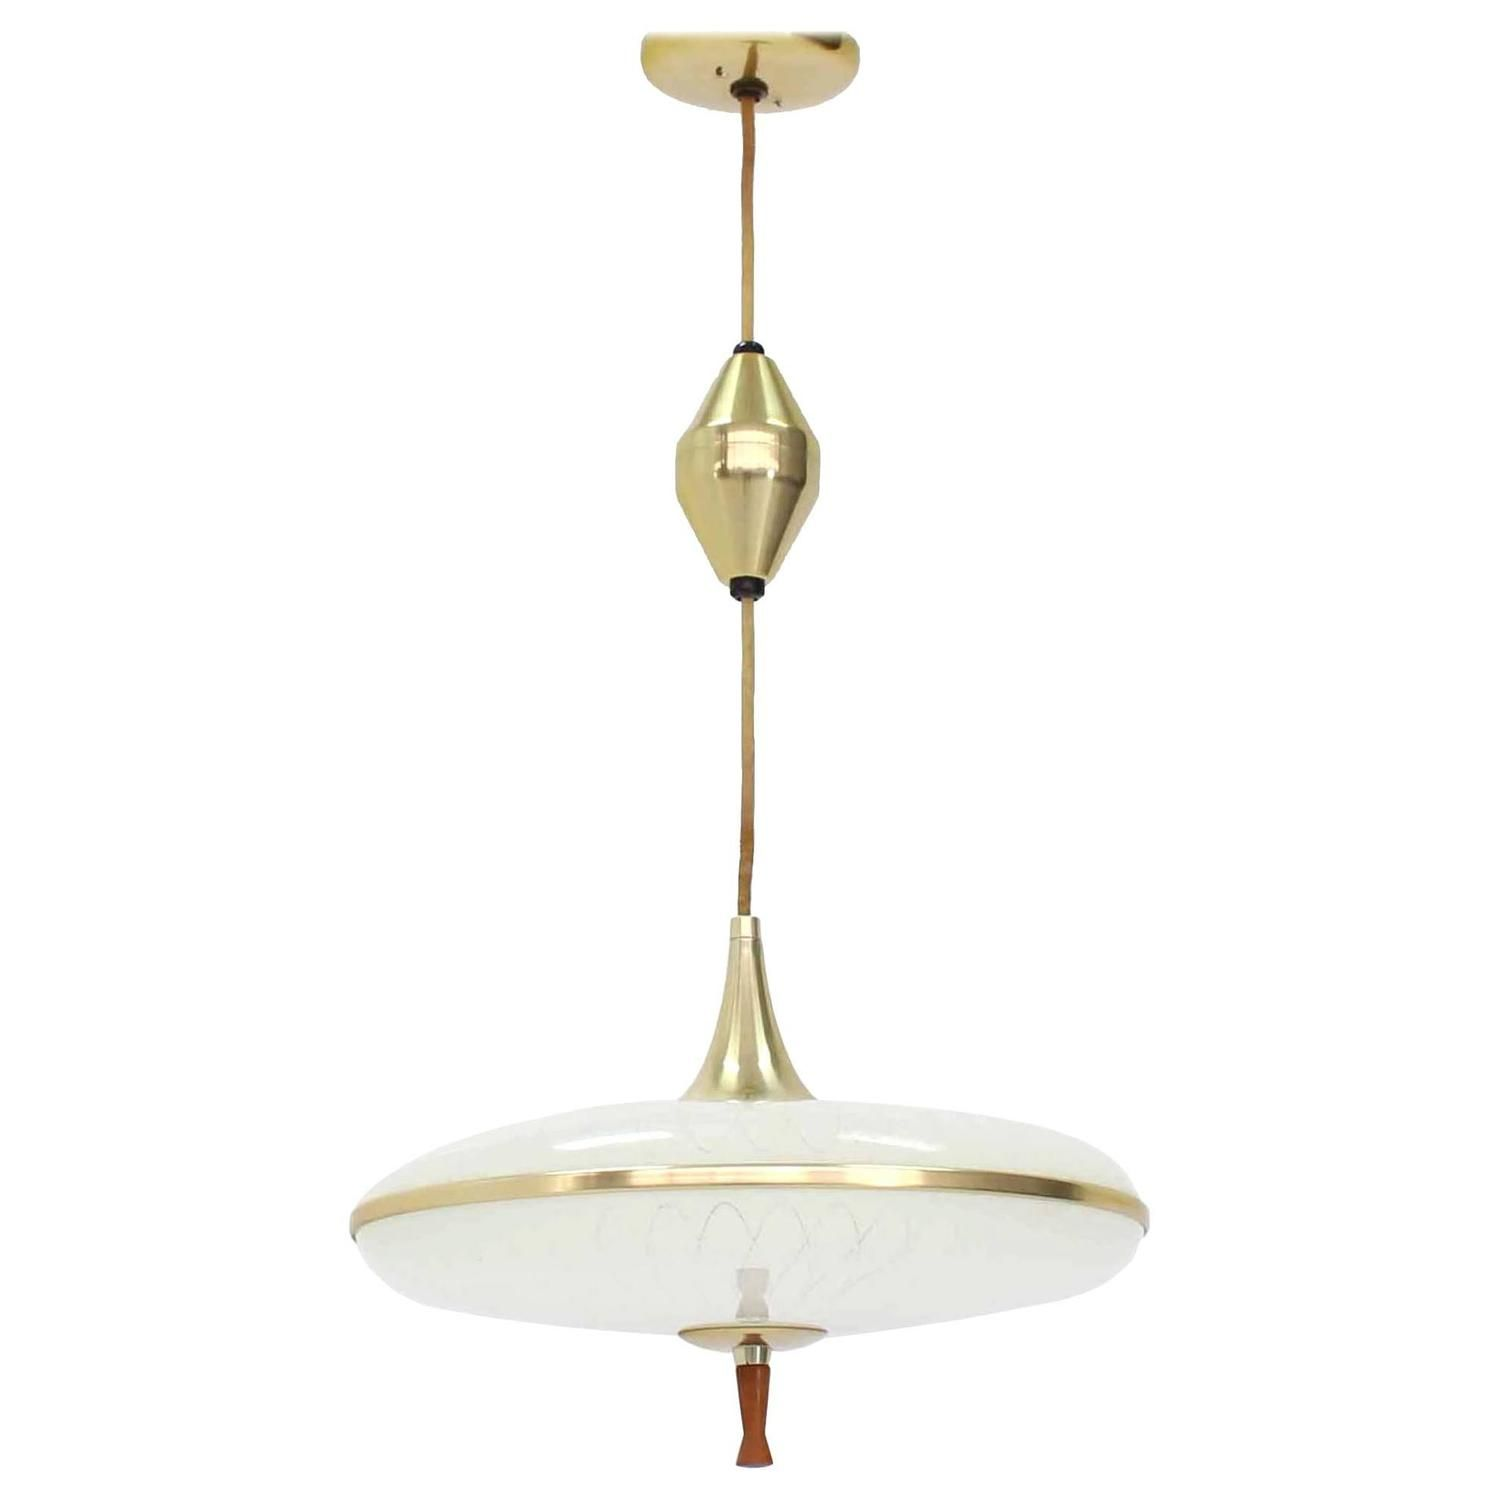 Retractable Adjustable Height Light Fixture From A Unique